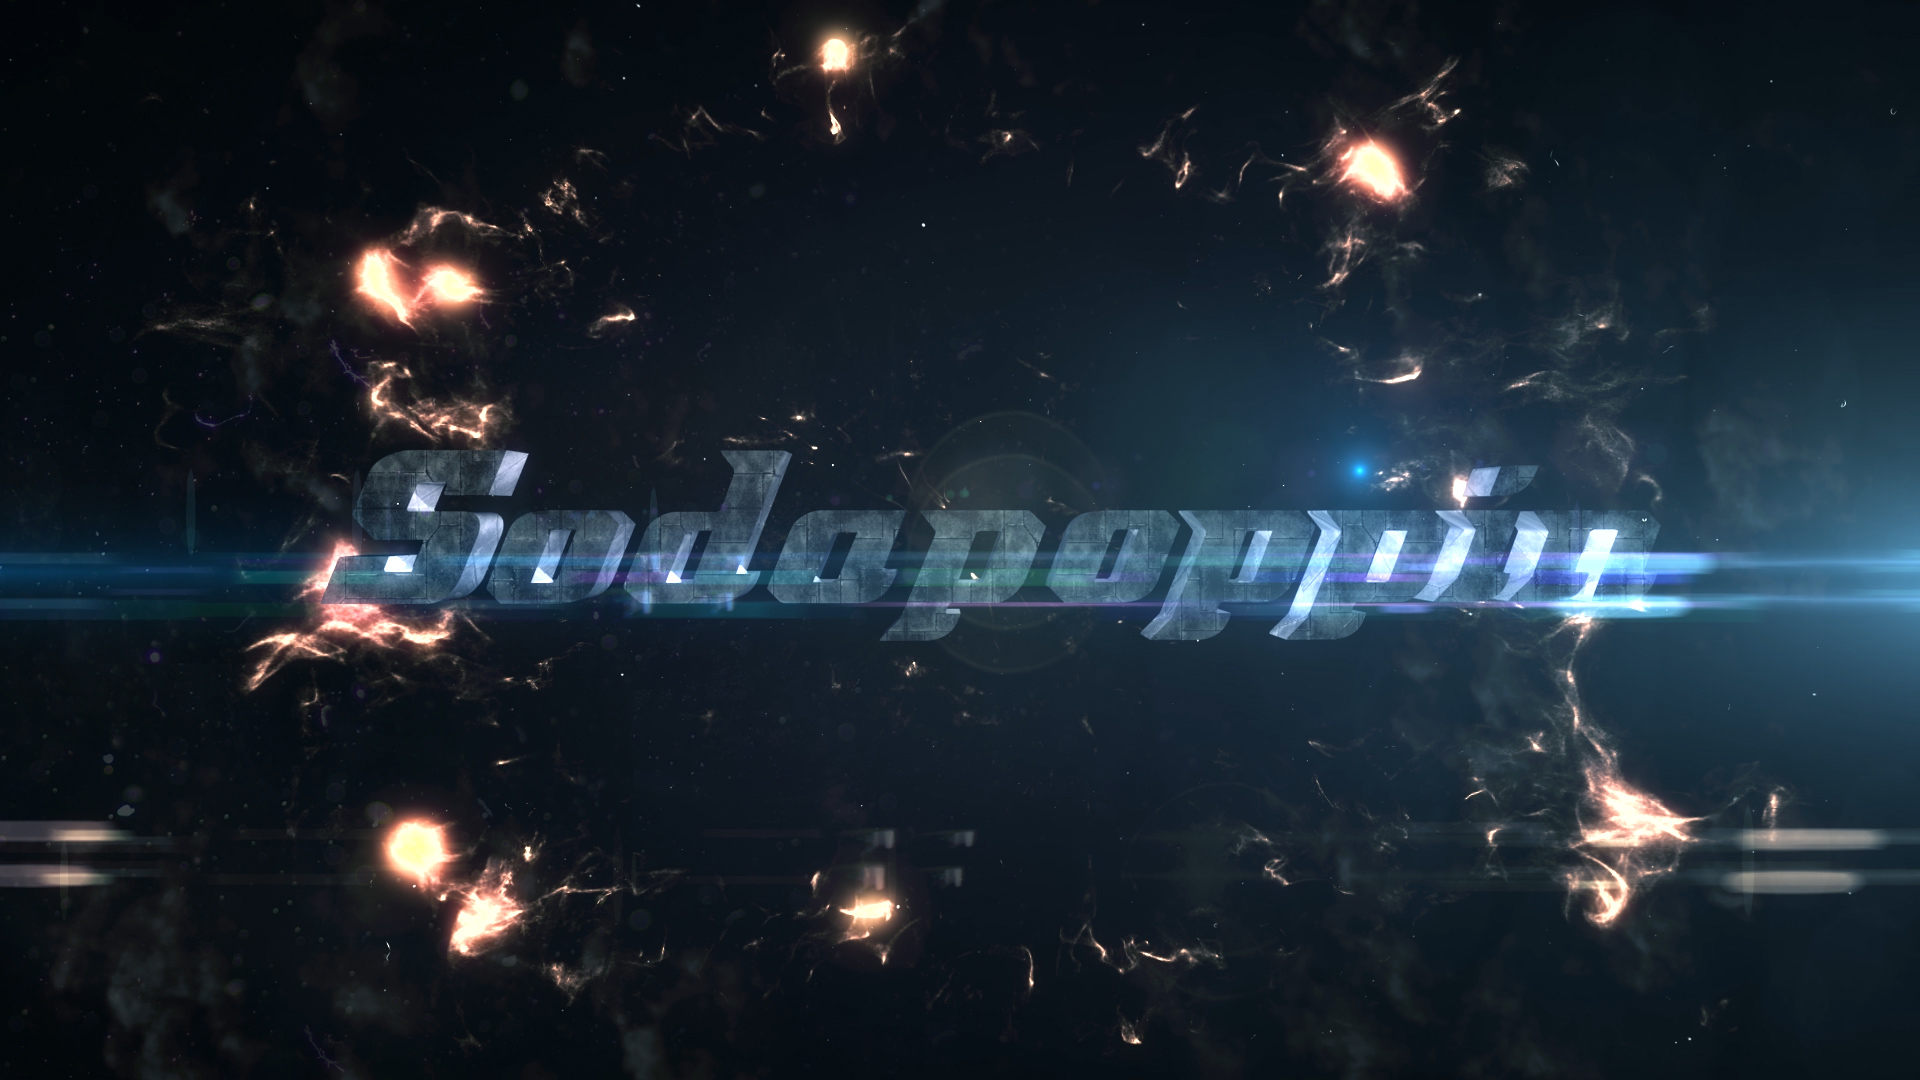 Sodapoppin 3d Wallpaper Sodapoppin Intro Amp Downloads By Psynaps